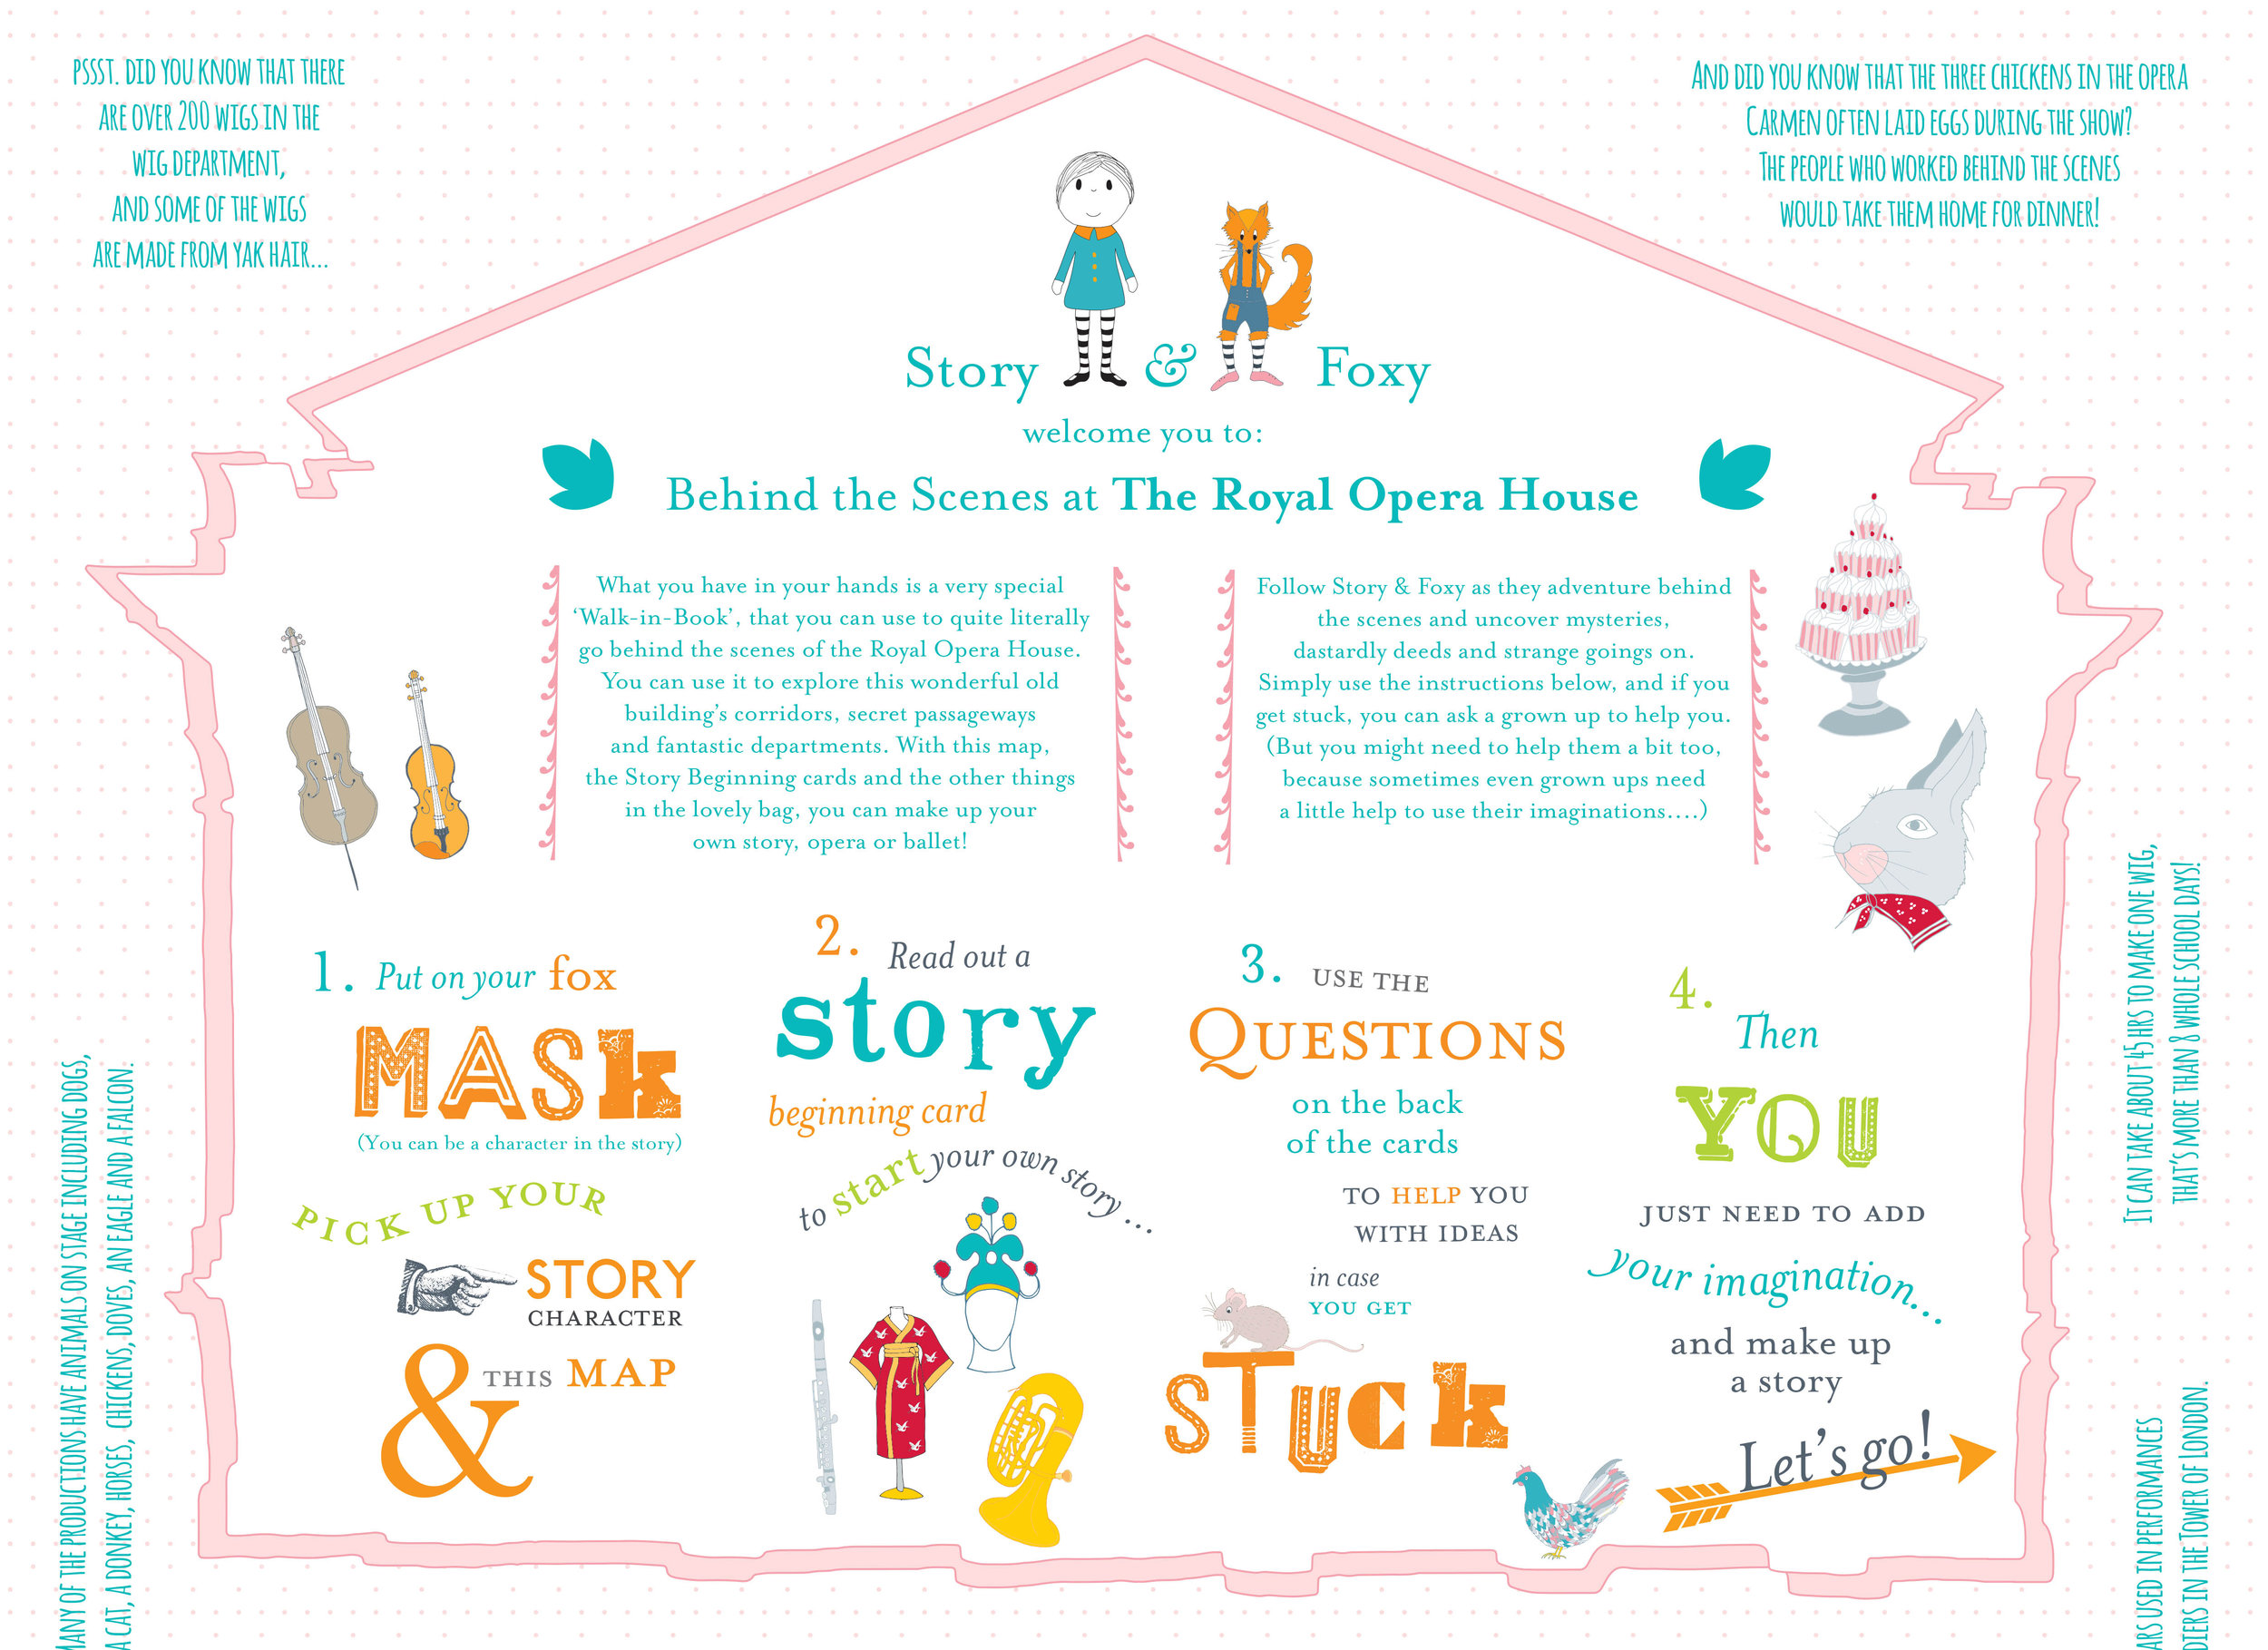 A bespoke 'Walk-in-Book' for The Royal Opera House, including story cards, a mask and soft toy character.